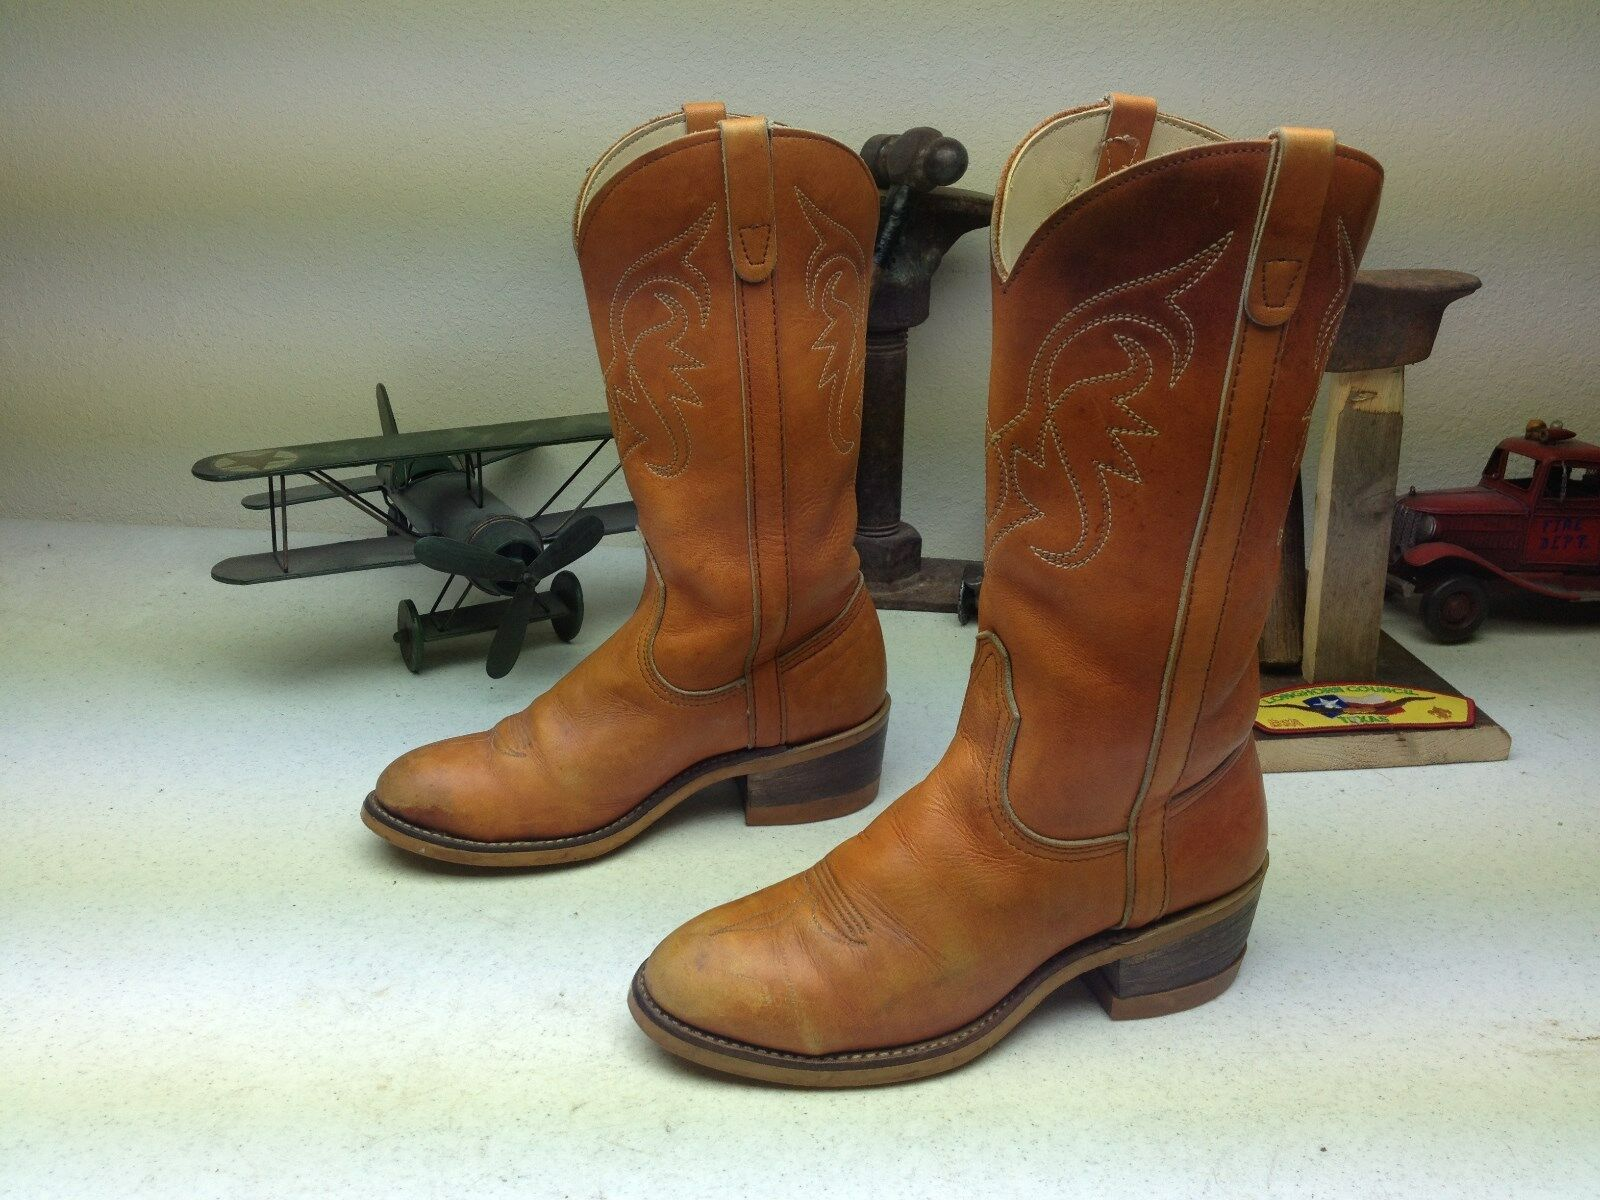 RUST BROWN DISTRESSED STEEL TOE MADE IN USA WESTERN WORK ENGINEER BOOTS 6 M